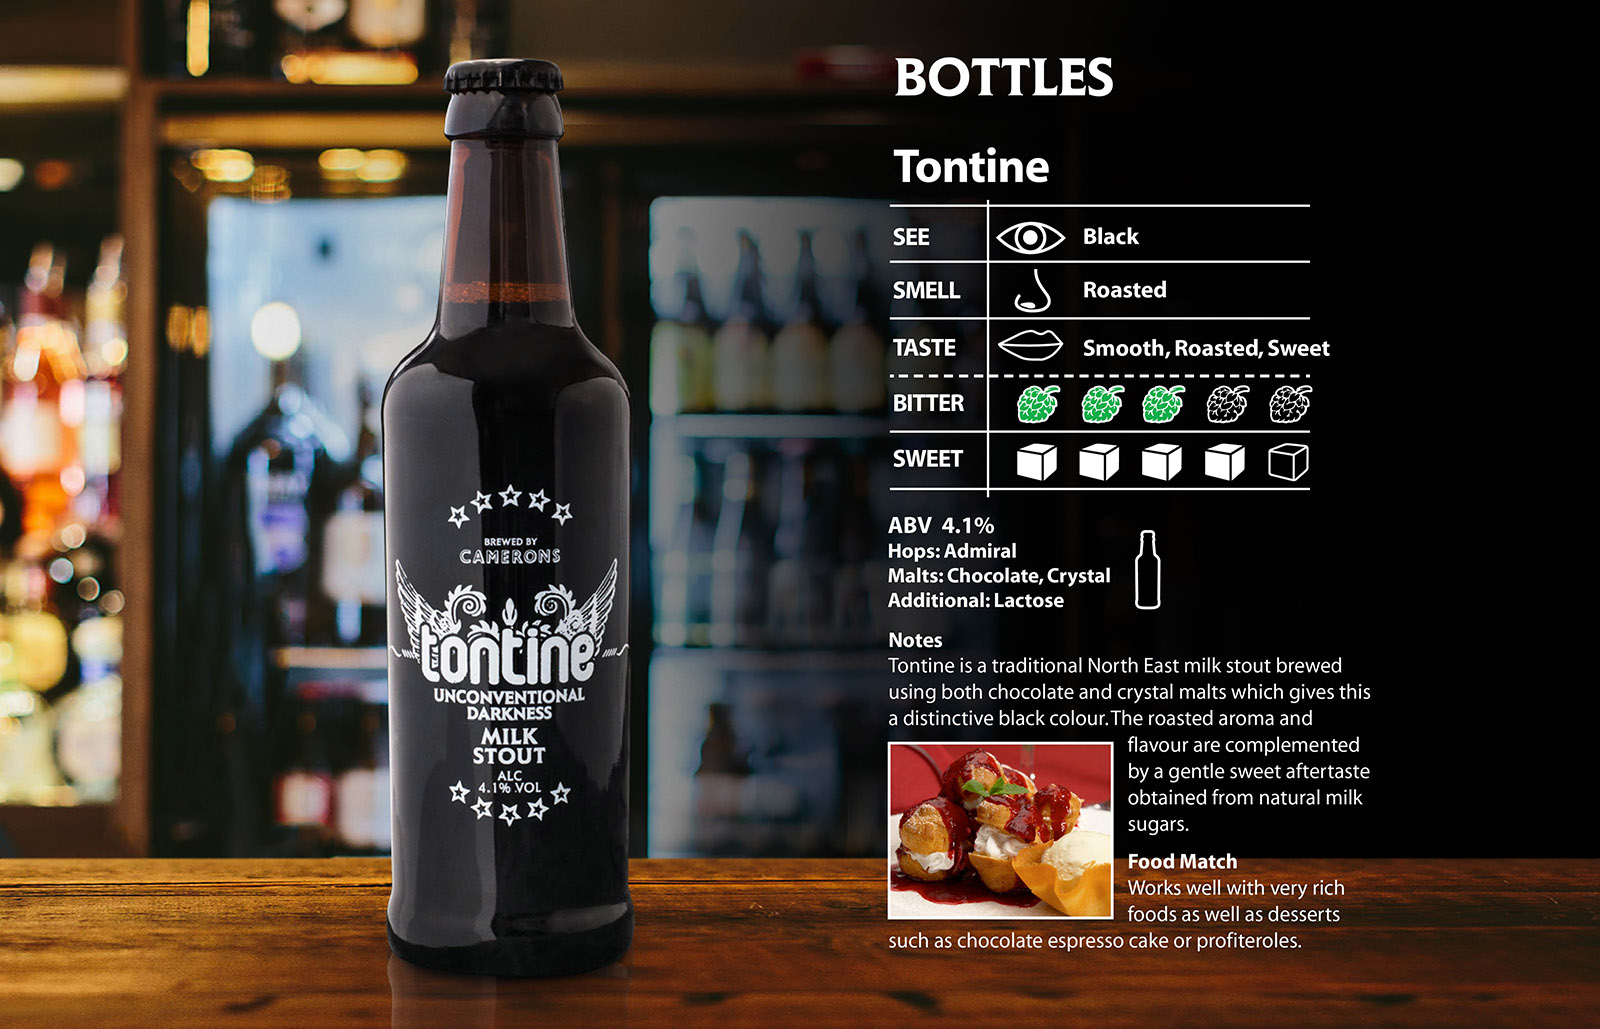 tontine bottle - camerons brewery